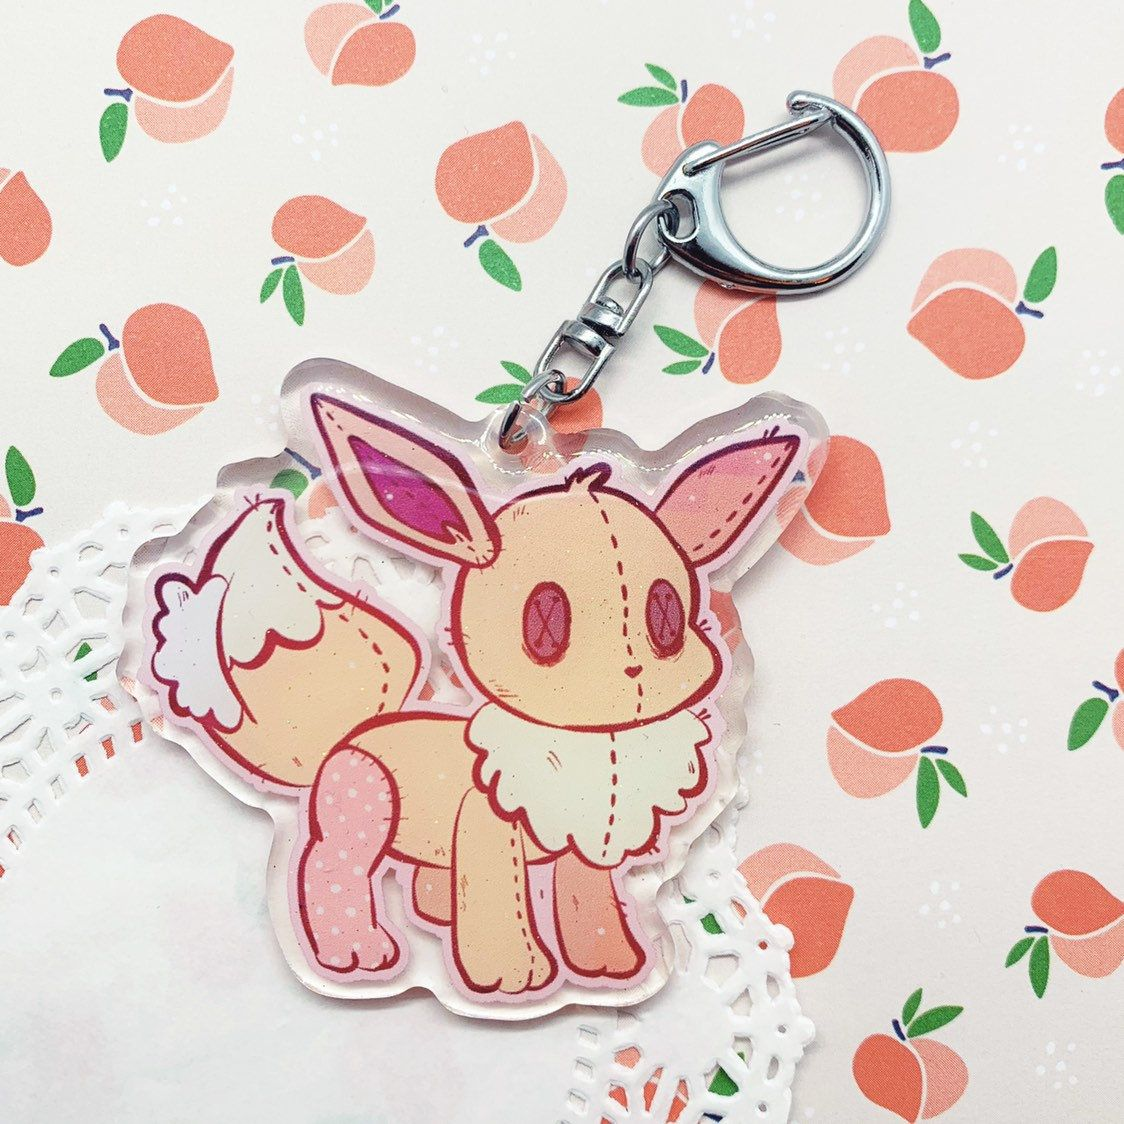 Eeveelution Plush Charms made by BlackberryALaMode -